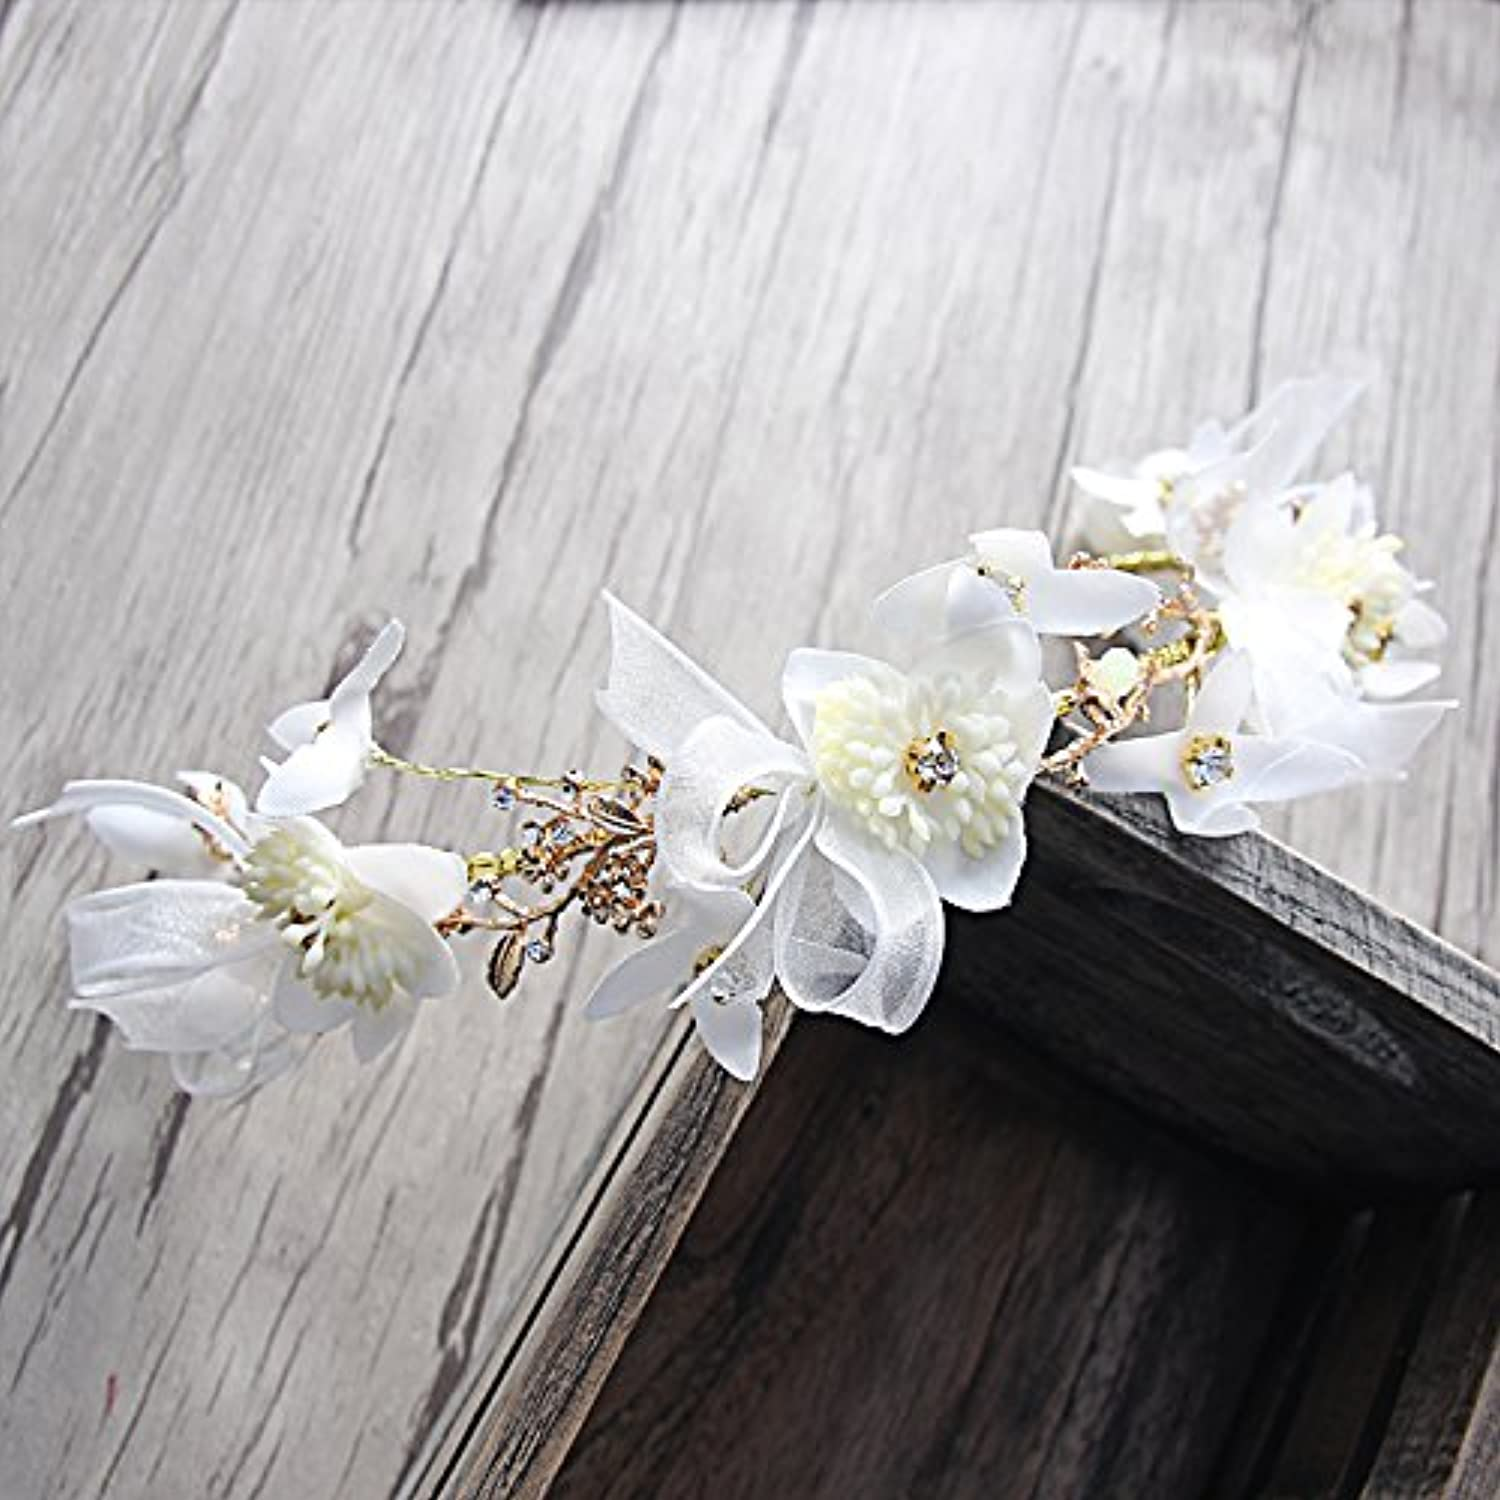 GTVERNHThe Bride Friezes Garlands Bridal Suite Accessories Sweet The Sum of The Girl Manual and Flowers Wedding Jewelry